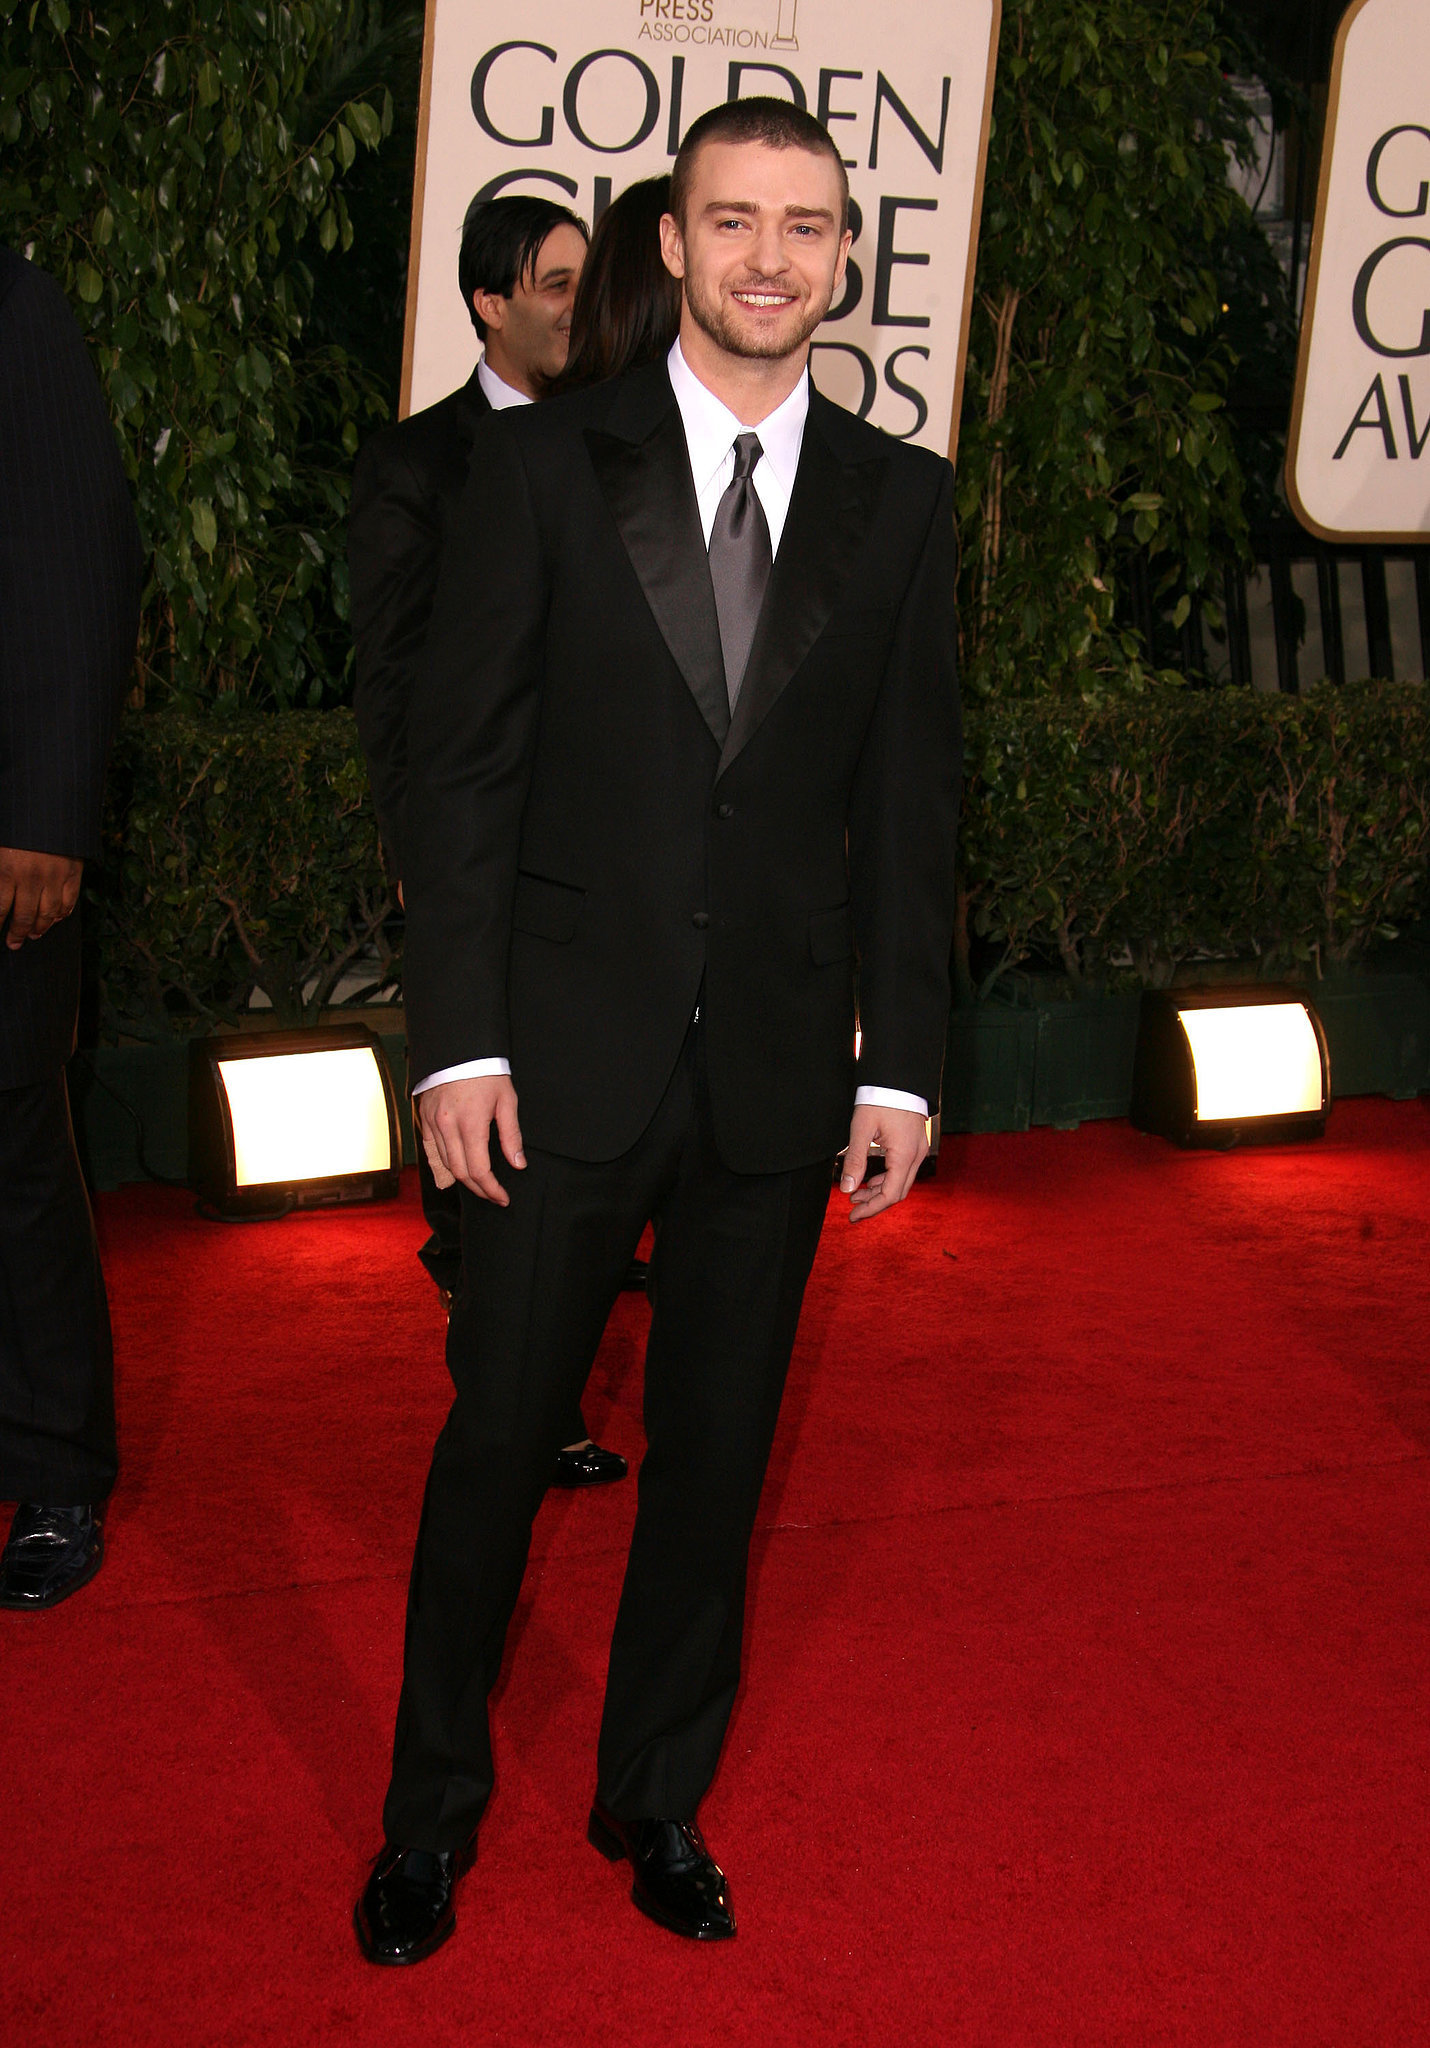 Justin was all smiles in a suit at the Golden Globes in 2007.